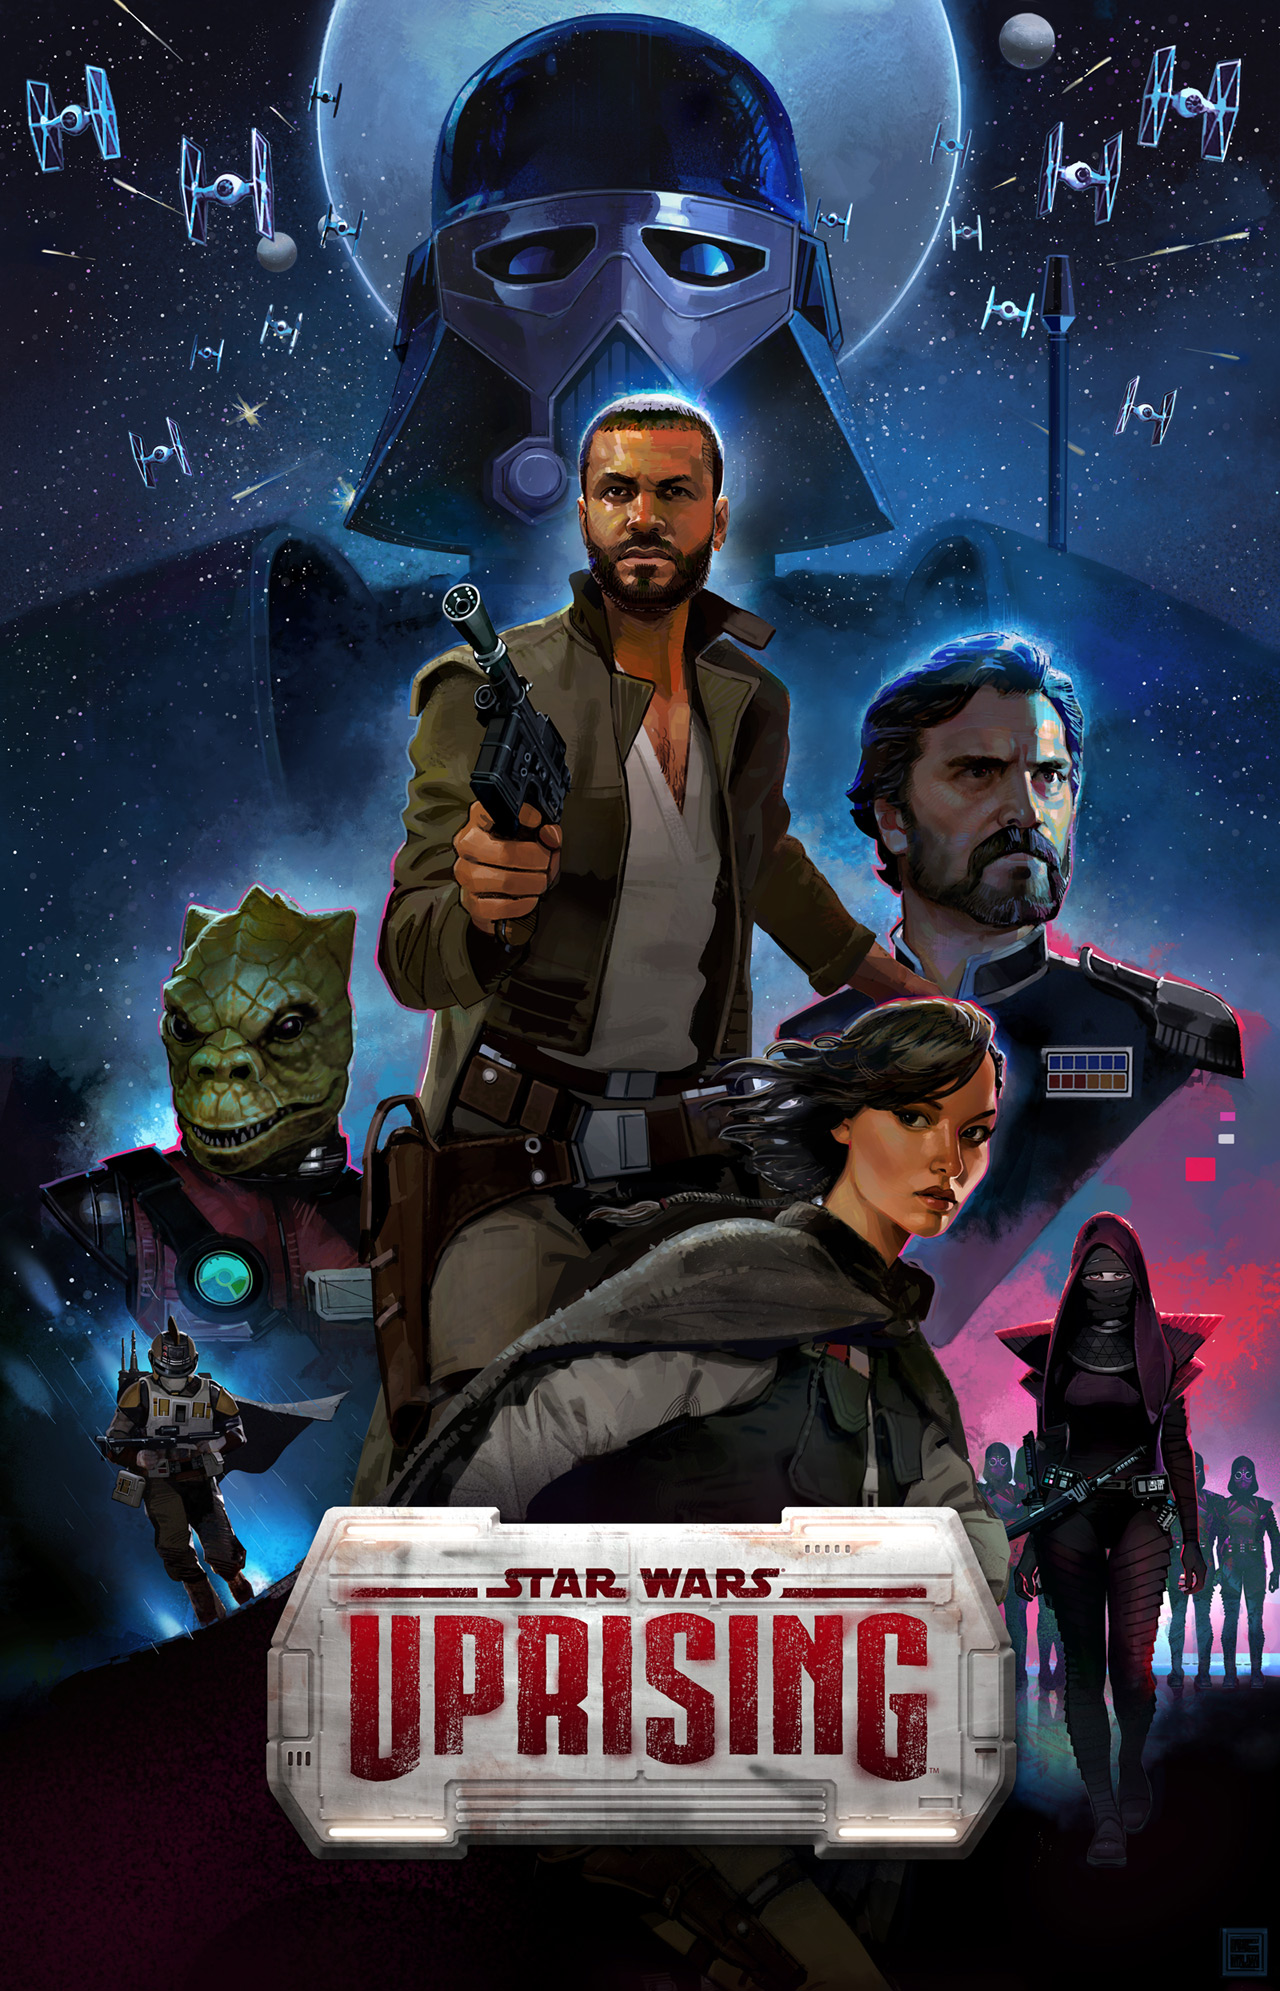 New Star Wars RPG coming set between Return of the Jedi and The Force Awakens